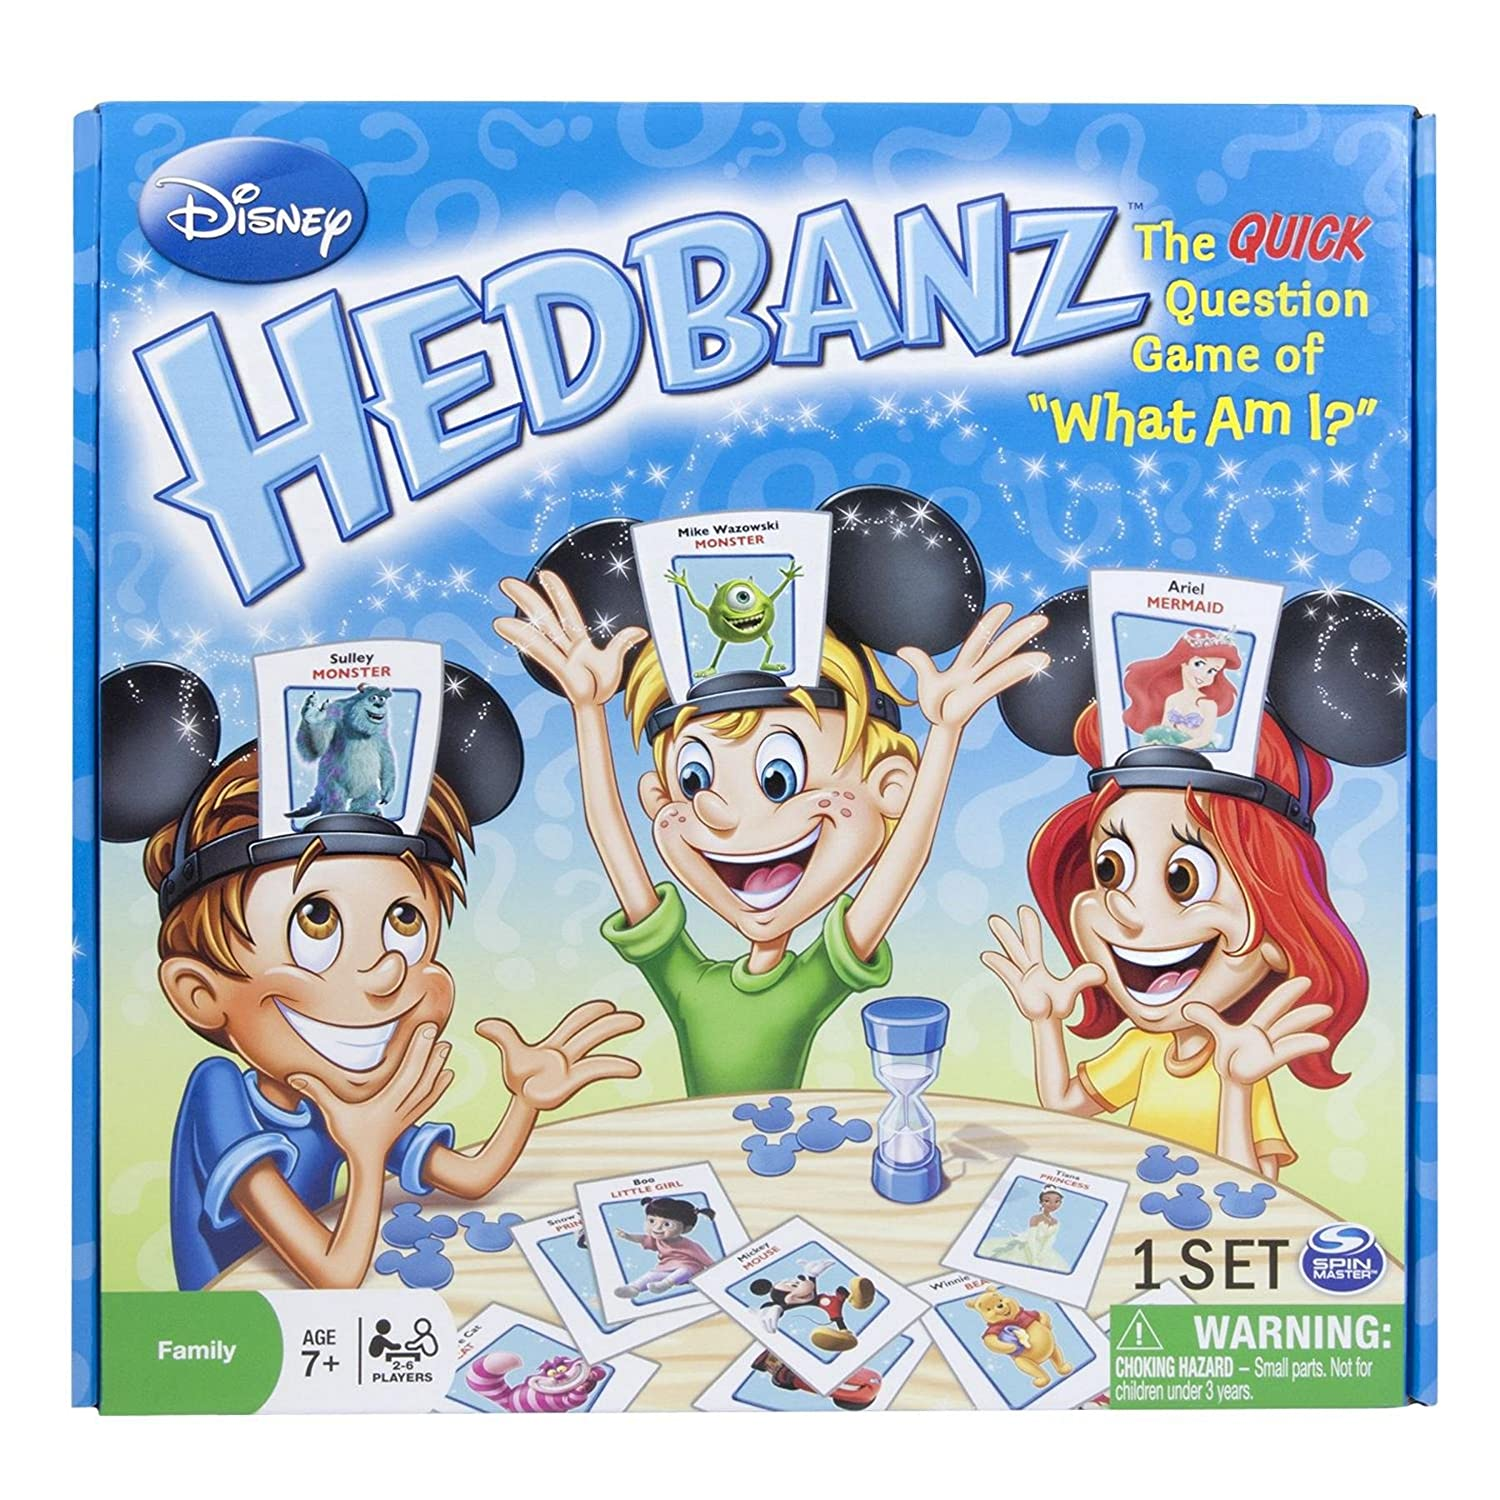 disney headbanz review